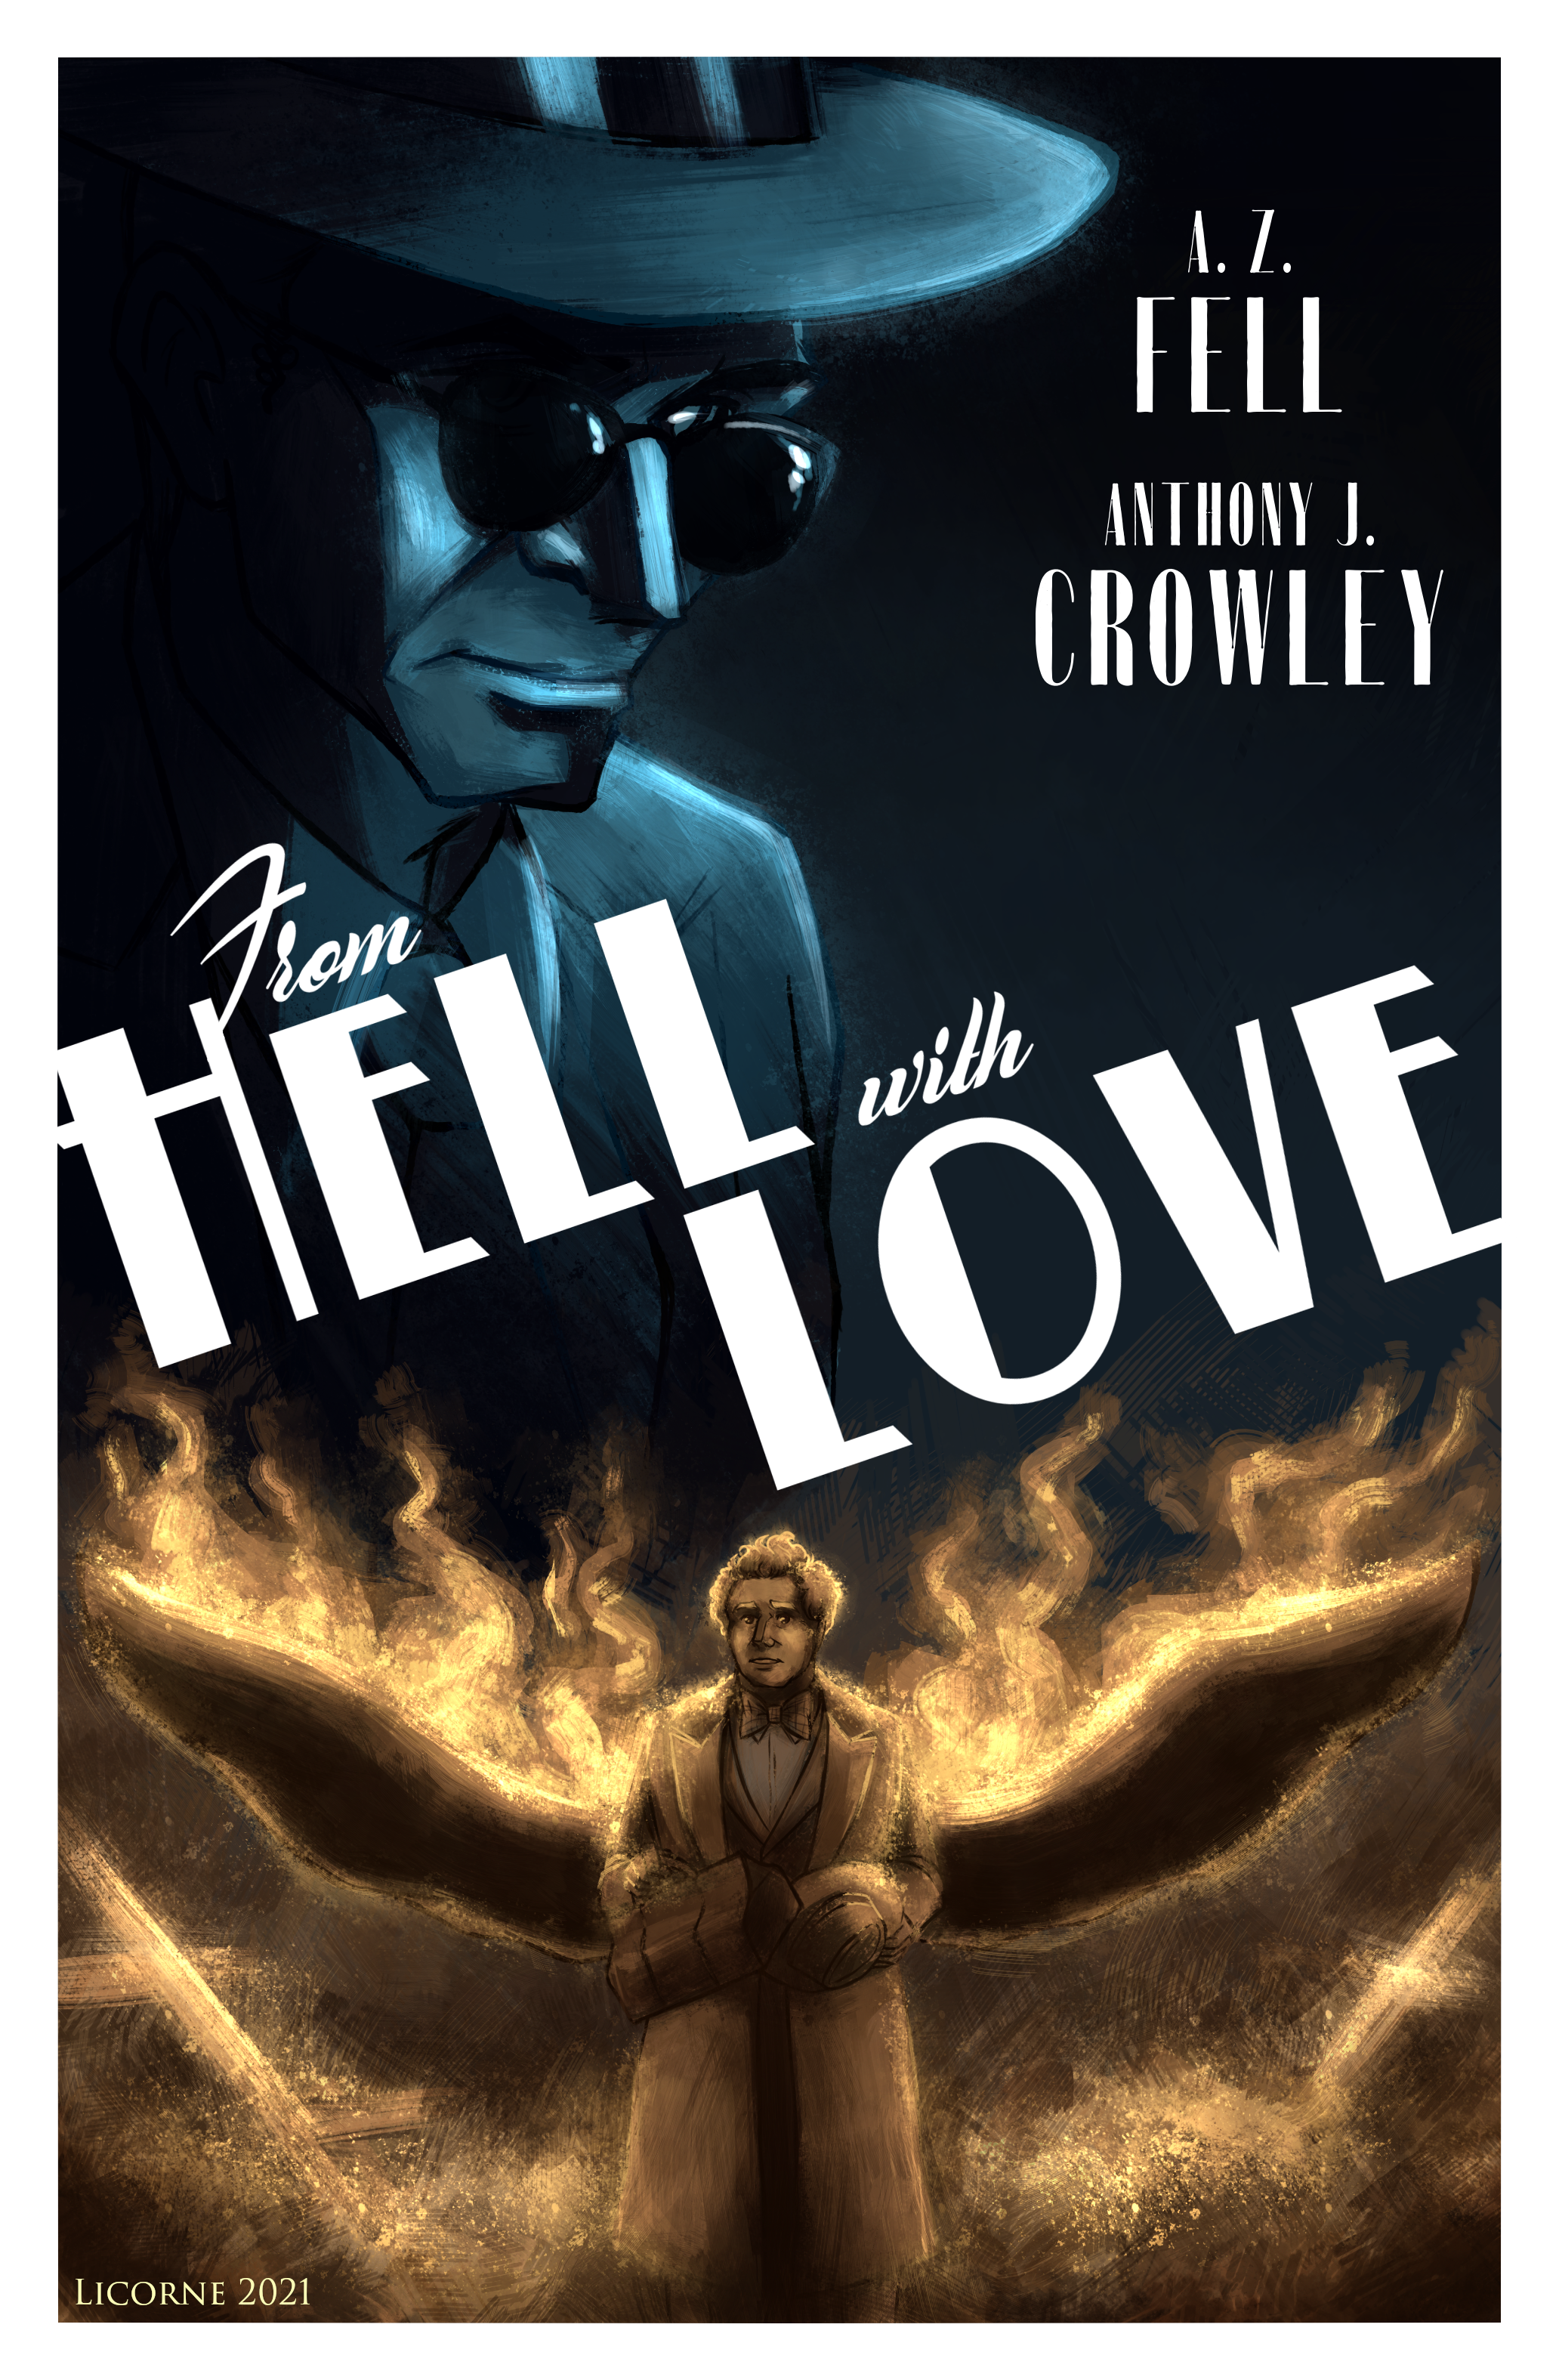 from Hell with Love movie poster featuring Aziraphale and Crowley